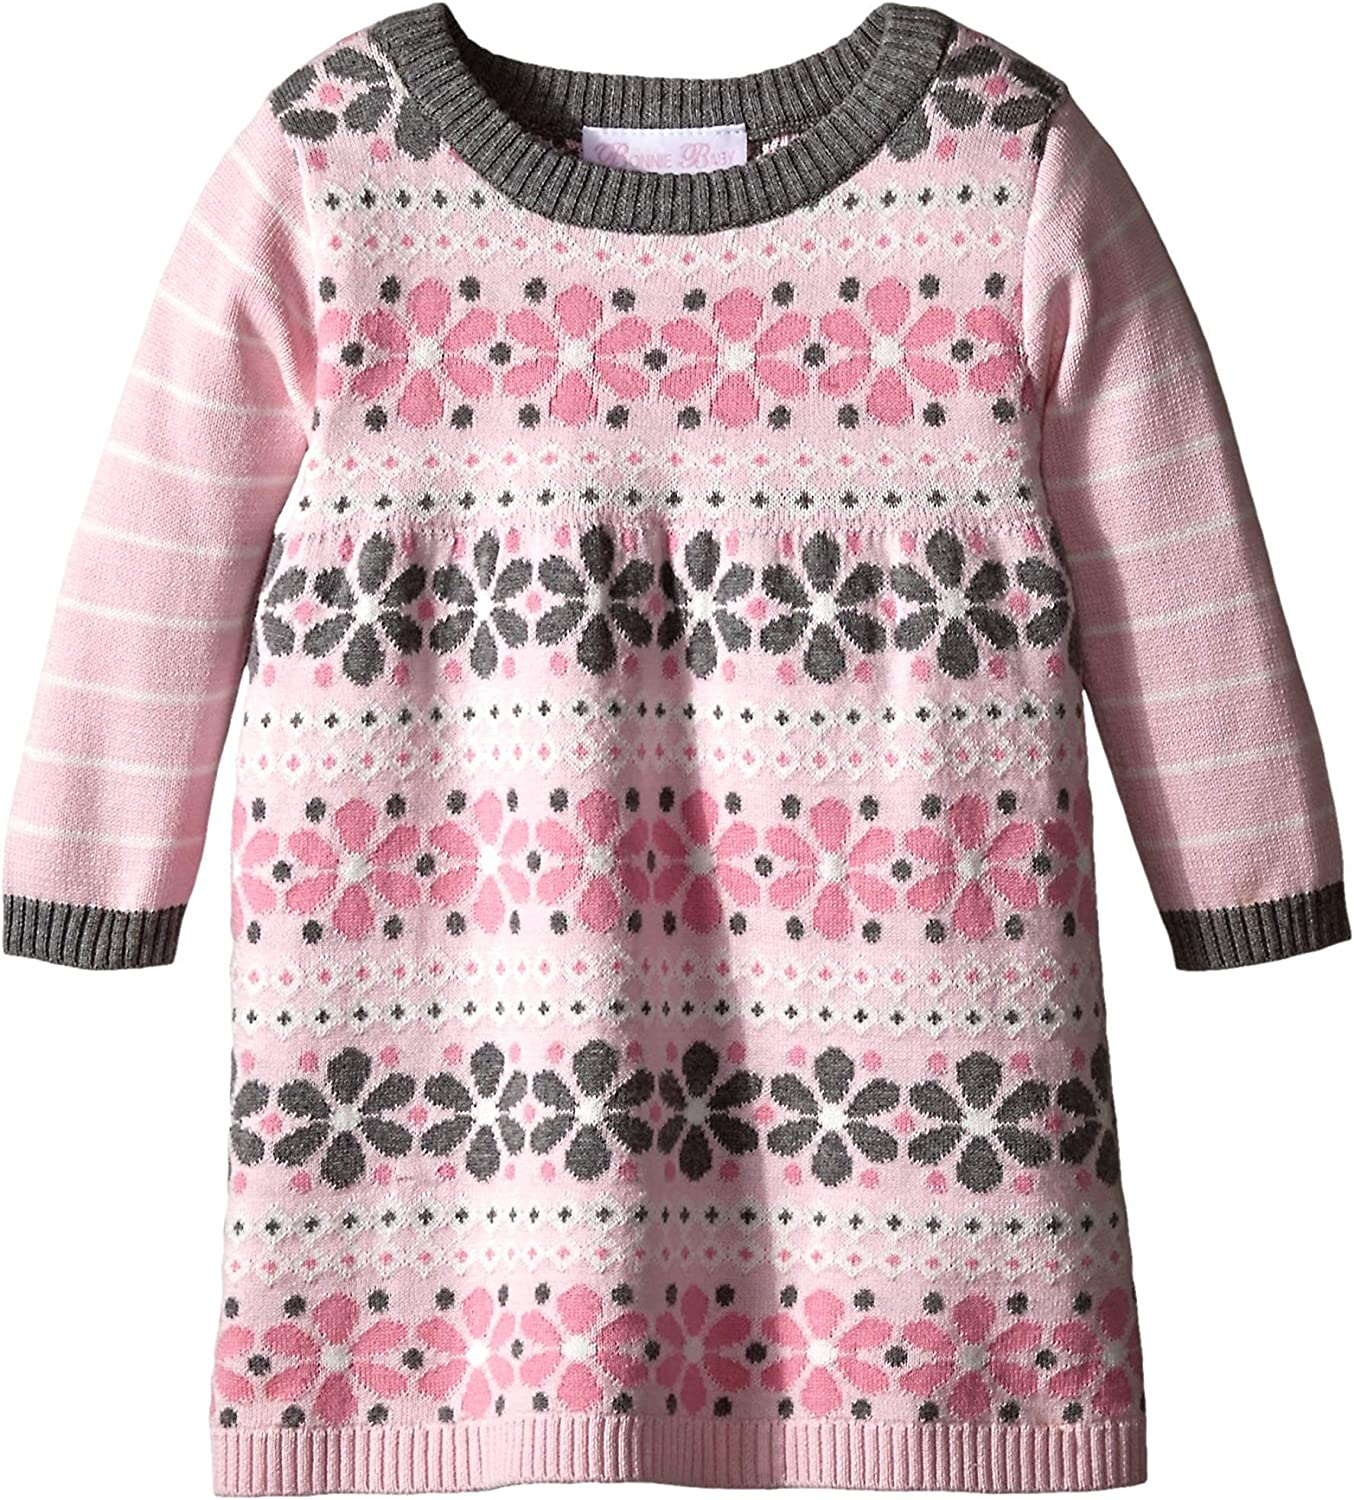 Bonnie Baby Baby Girls Long Sleeve Sweater Dress